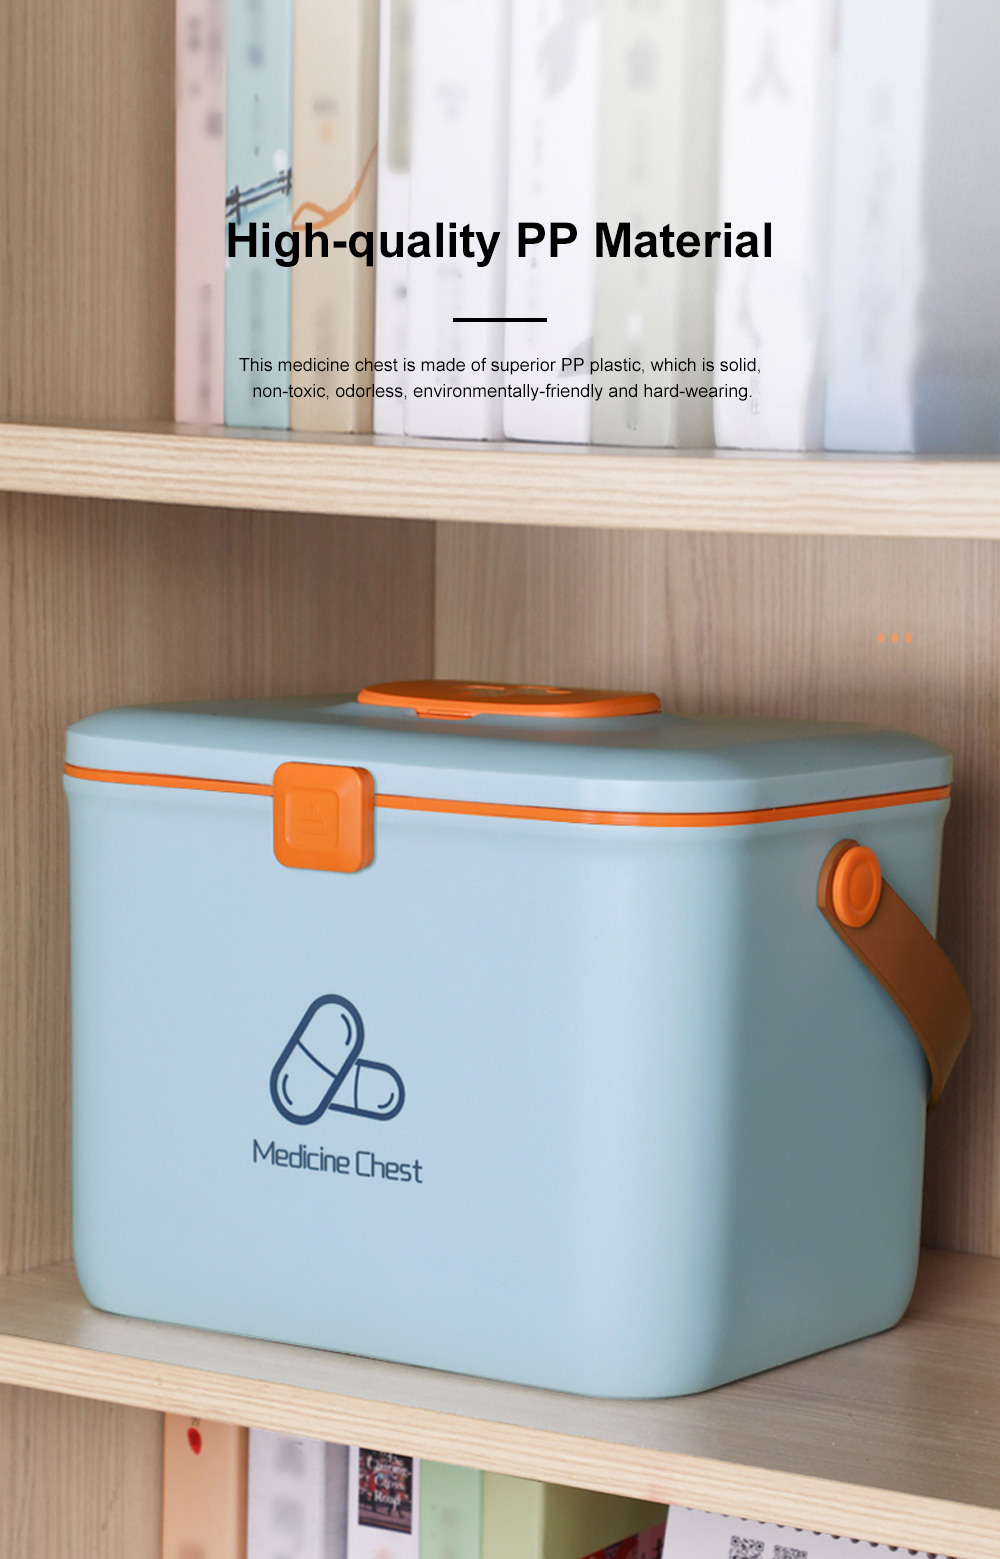 Large Capacity Portable Multilayers Household Medicine Cabinet Chest First-aid Pill Case Storage Box with Leather Handle 3